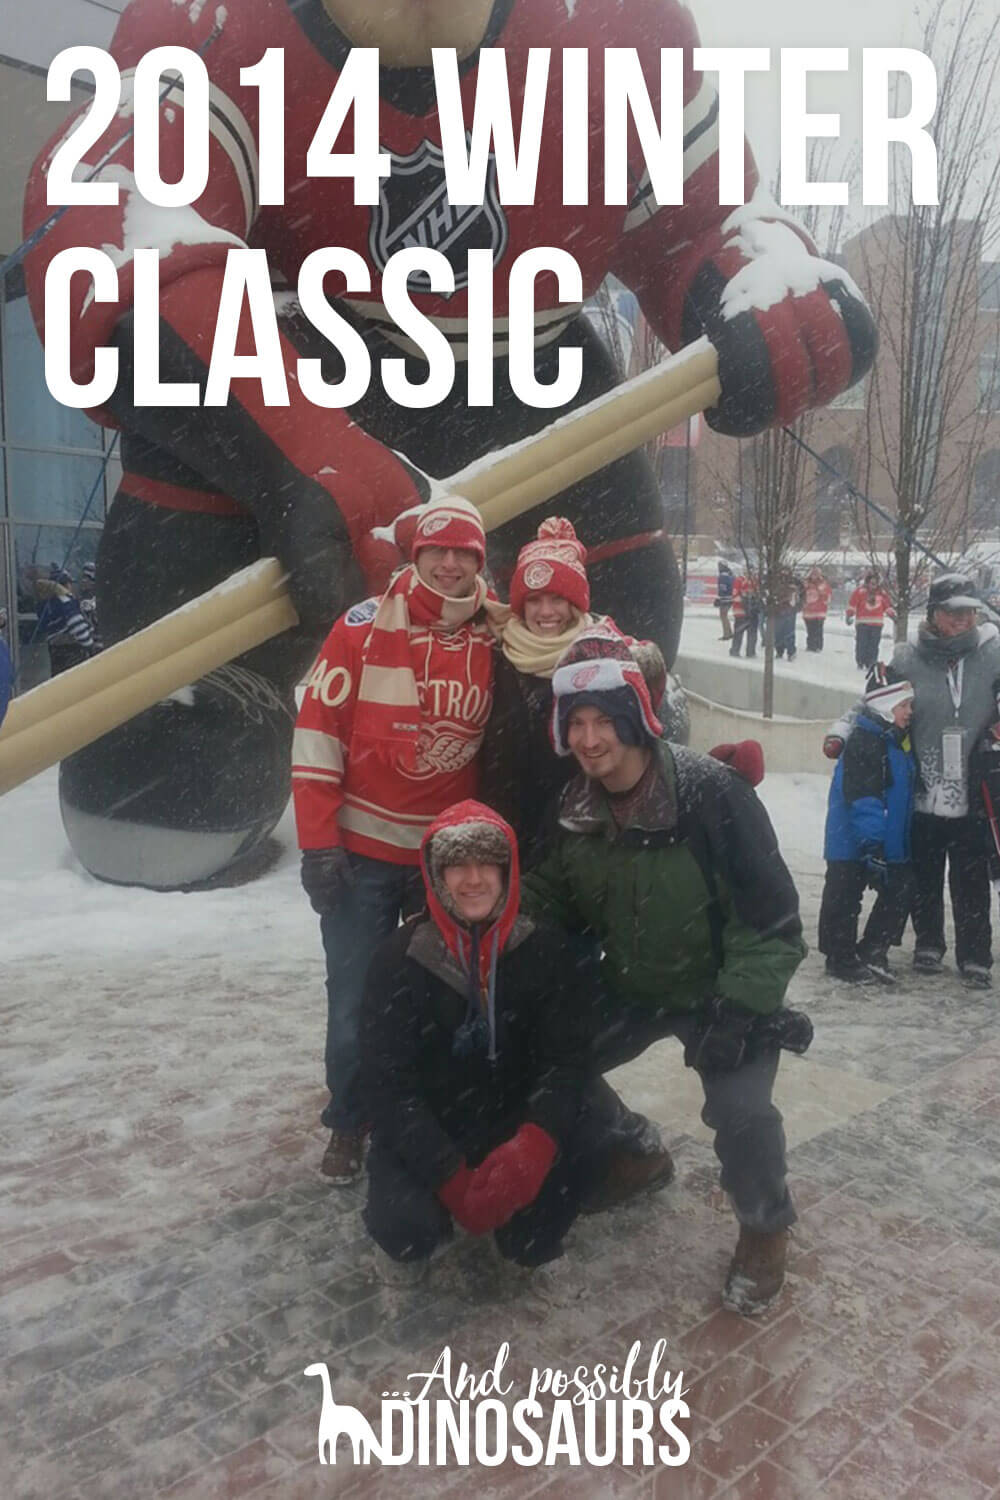 The 2014 Winter Classic was an experience of a lifetime for hockey fans. Click through to find out what it was like!